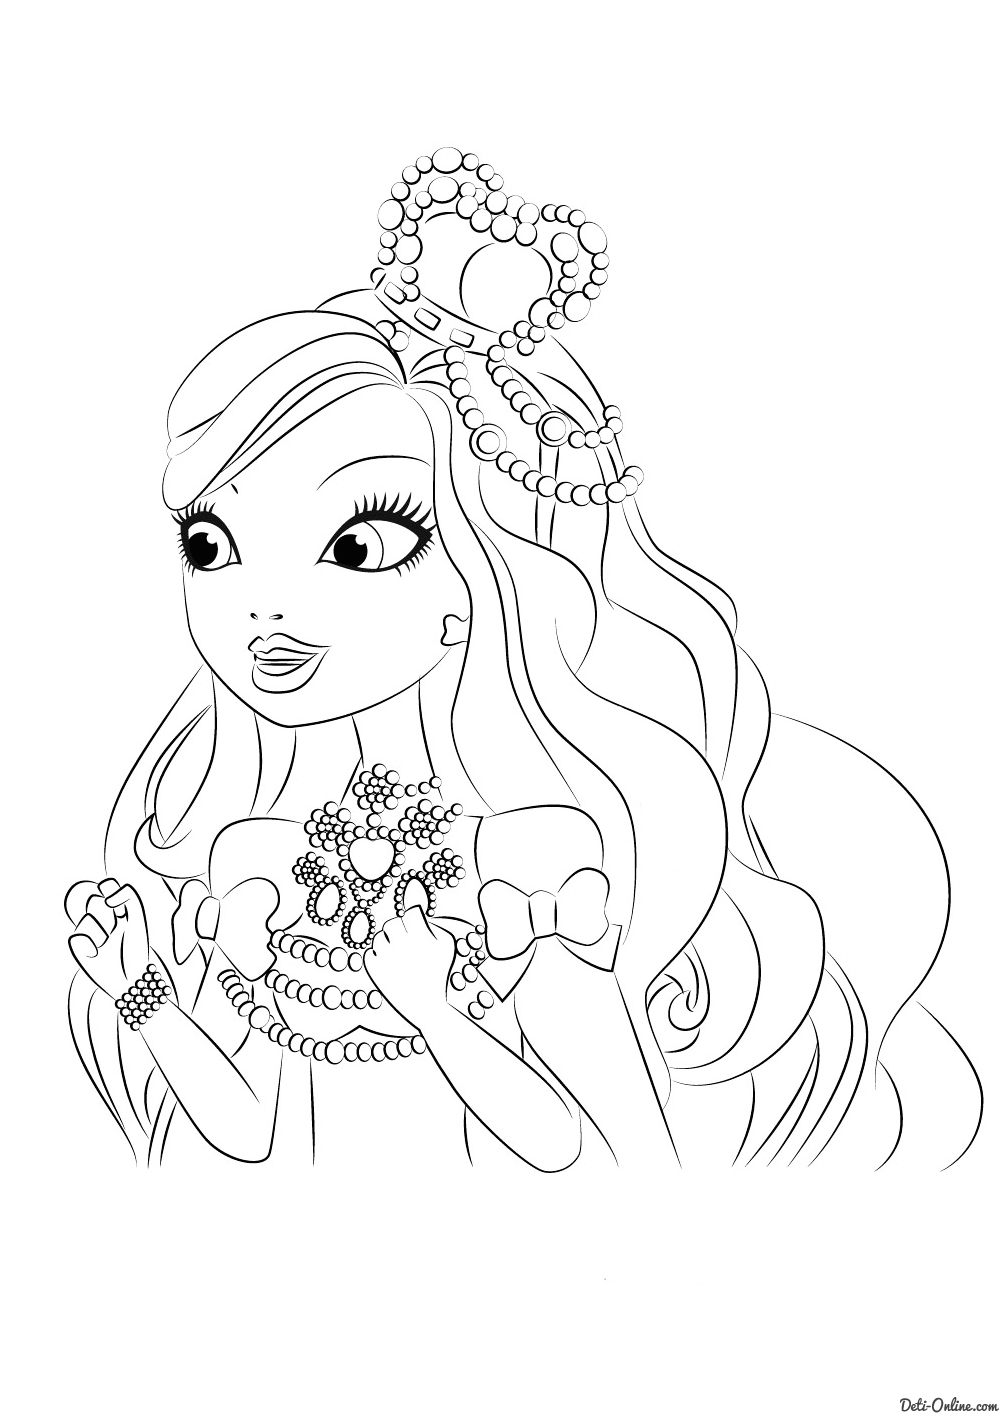 elena coloring pages - 2632